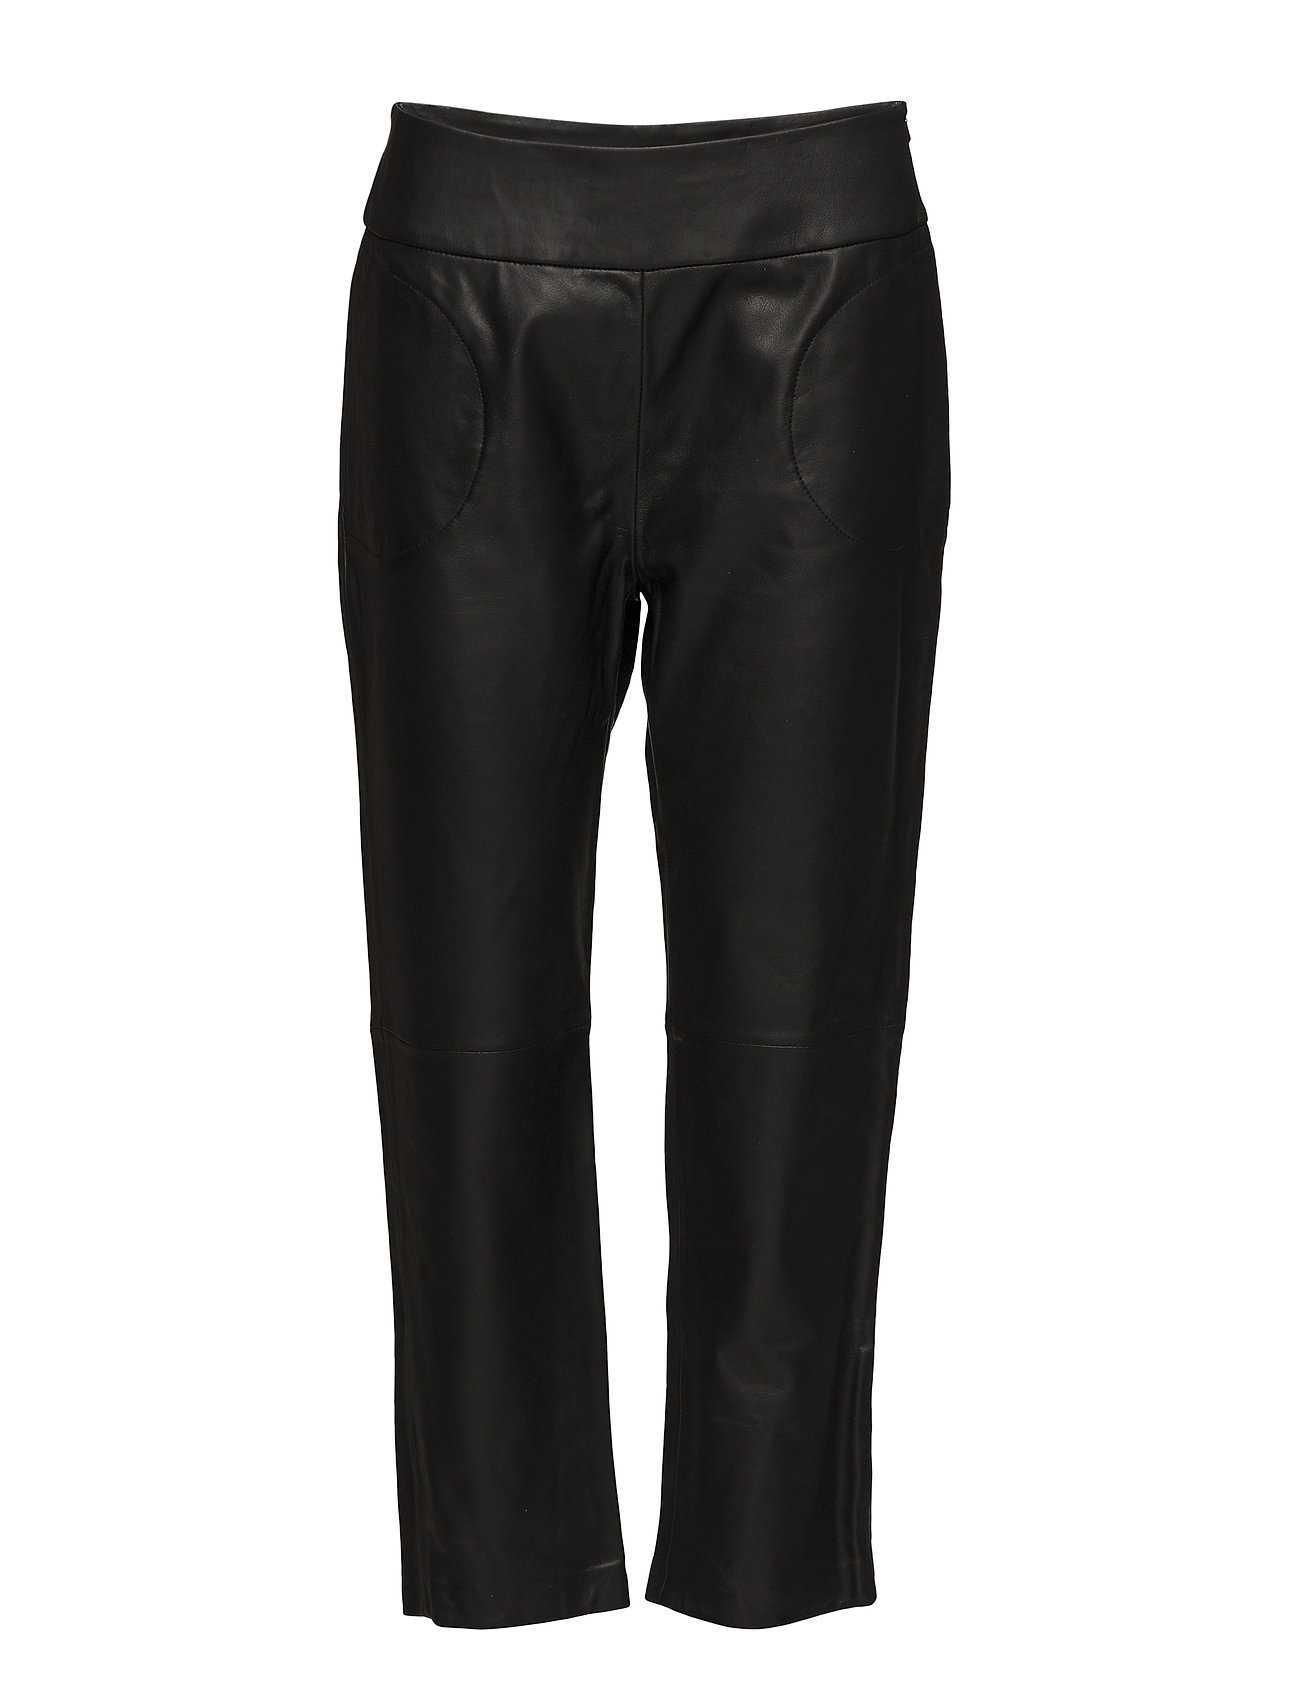 Image of Day Nissa Leather Leggings/Bukser Sort DAY BIRGER ET MIKKELSEN (3216632687)